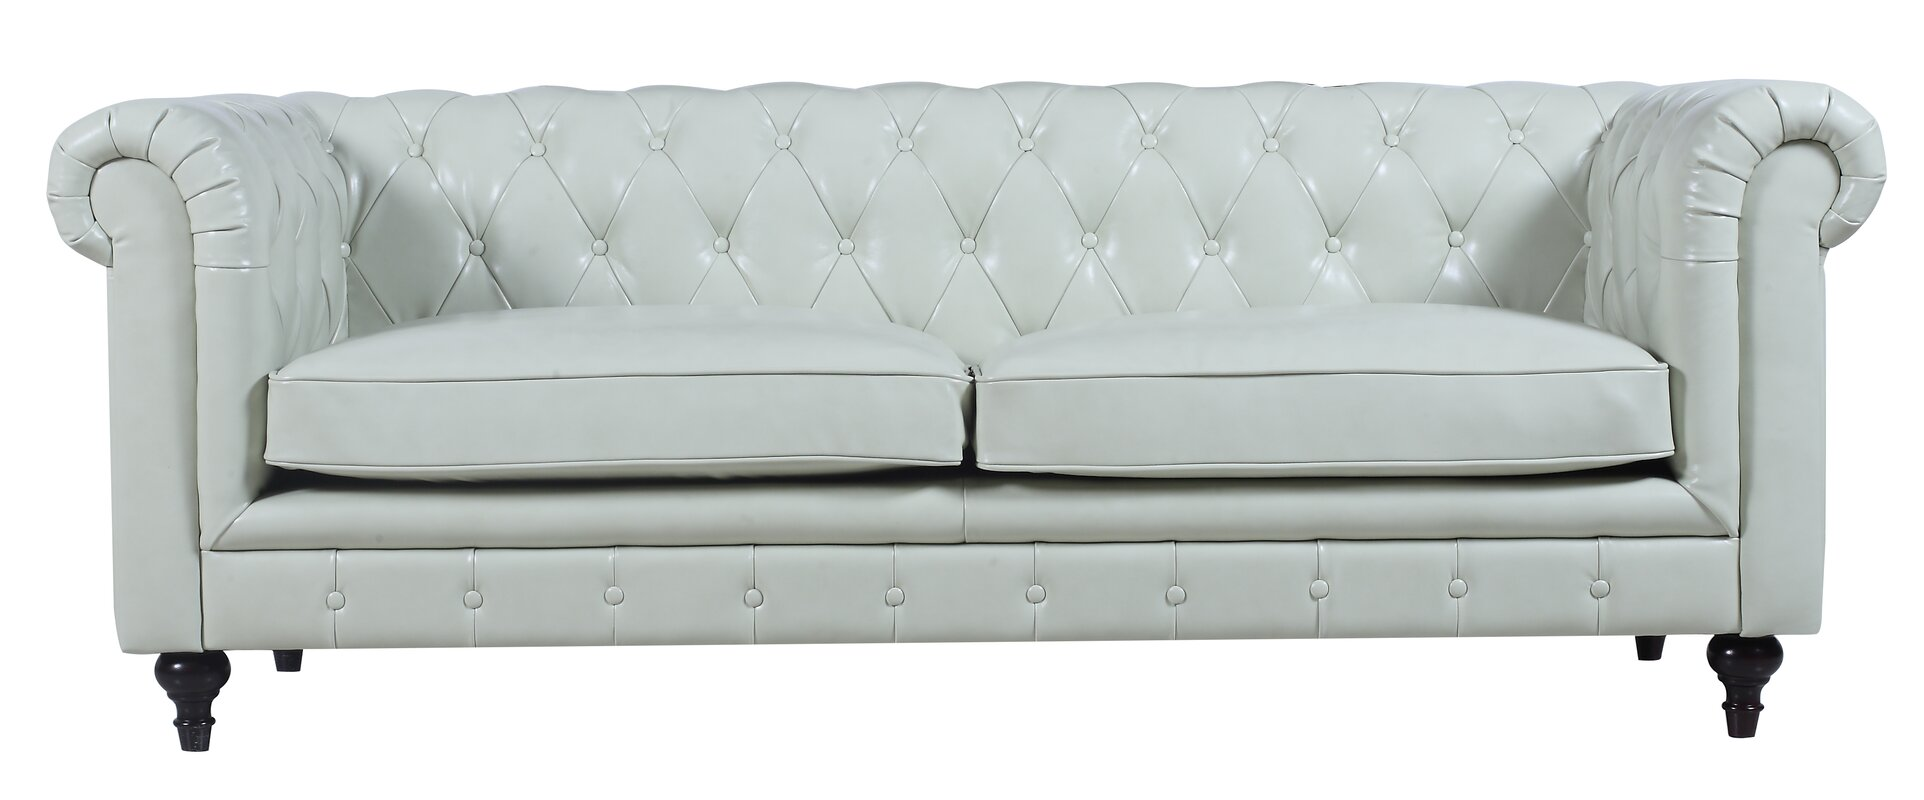 Madison home usa tufted leather chesterfield sofa for Chesterfield sofa bed usa